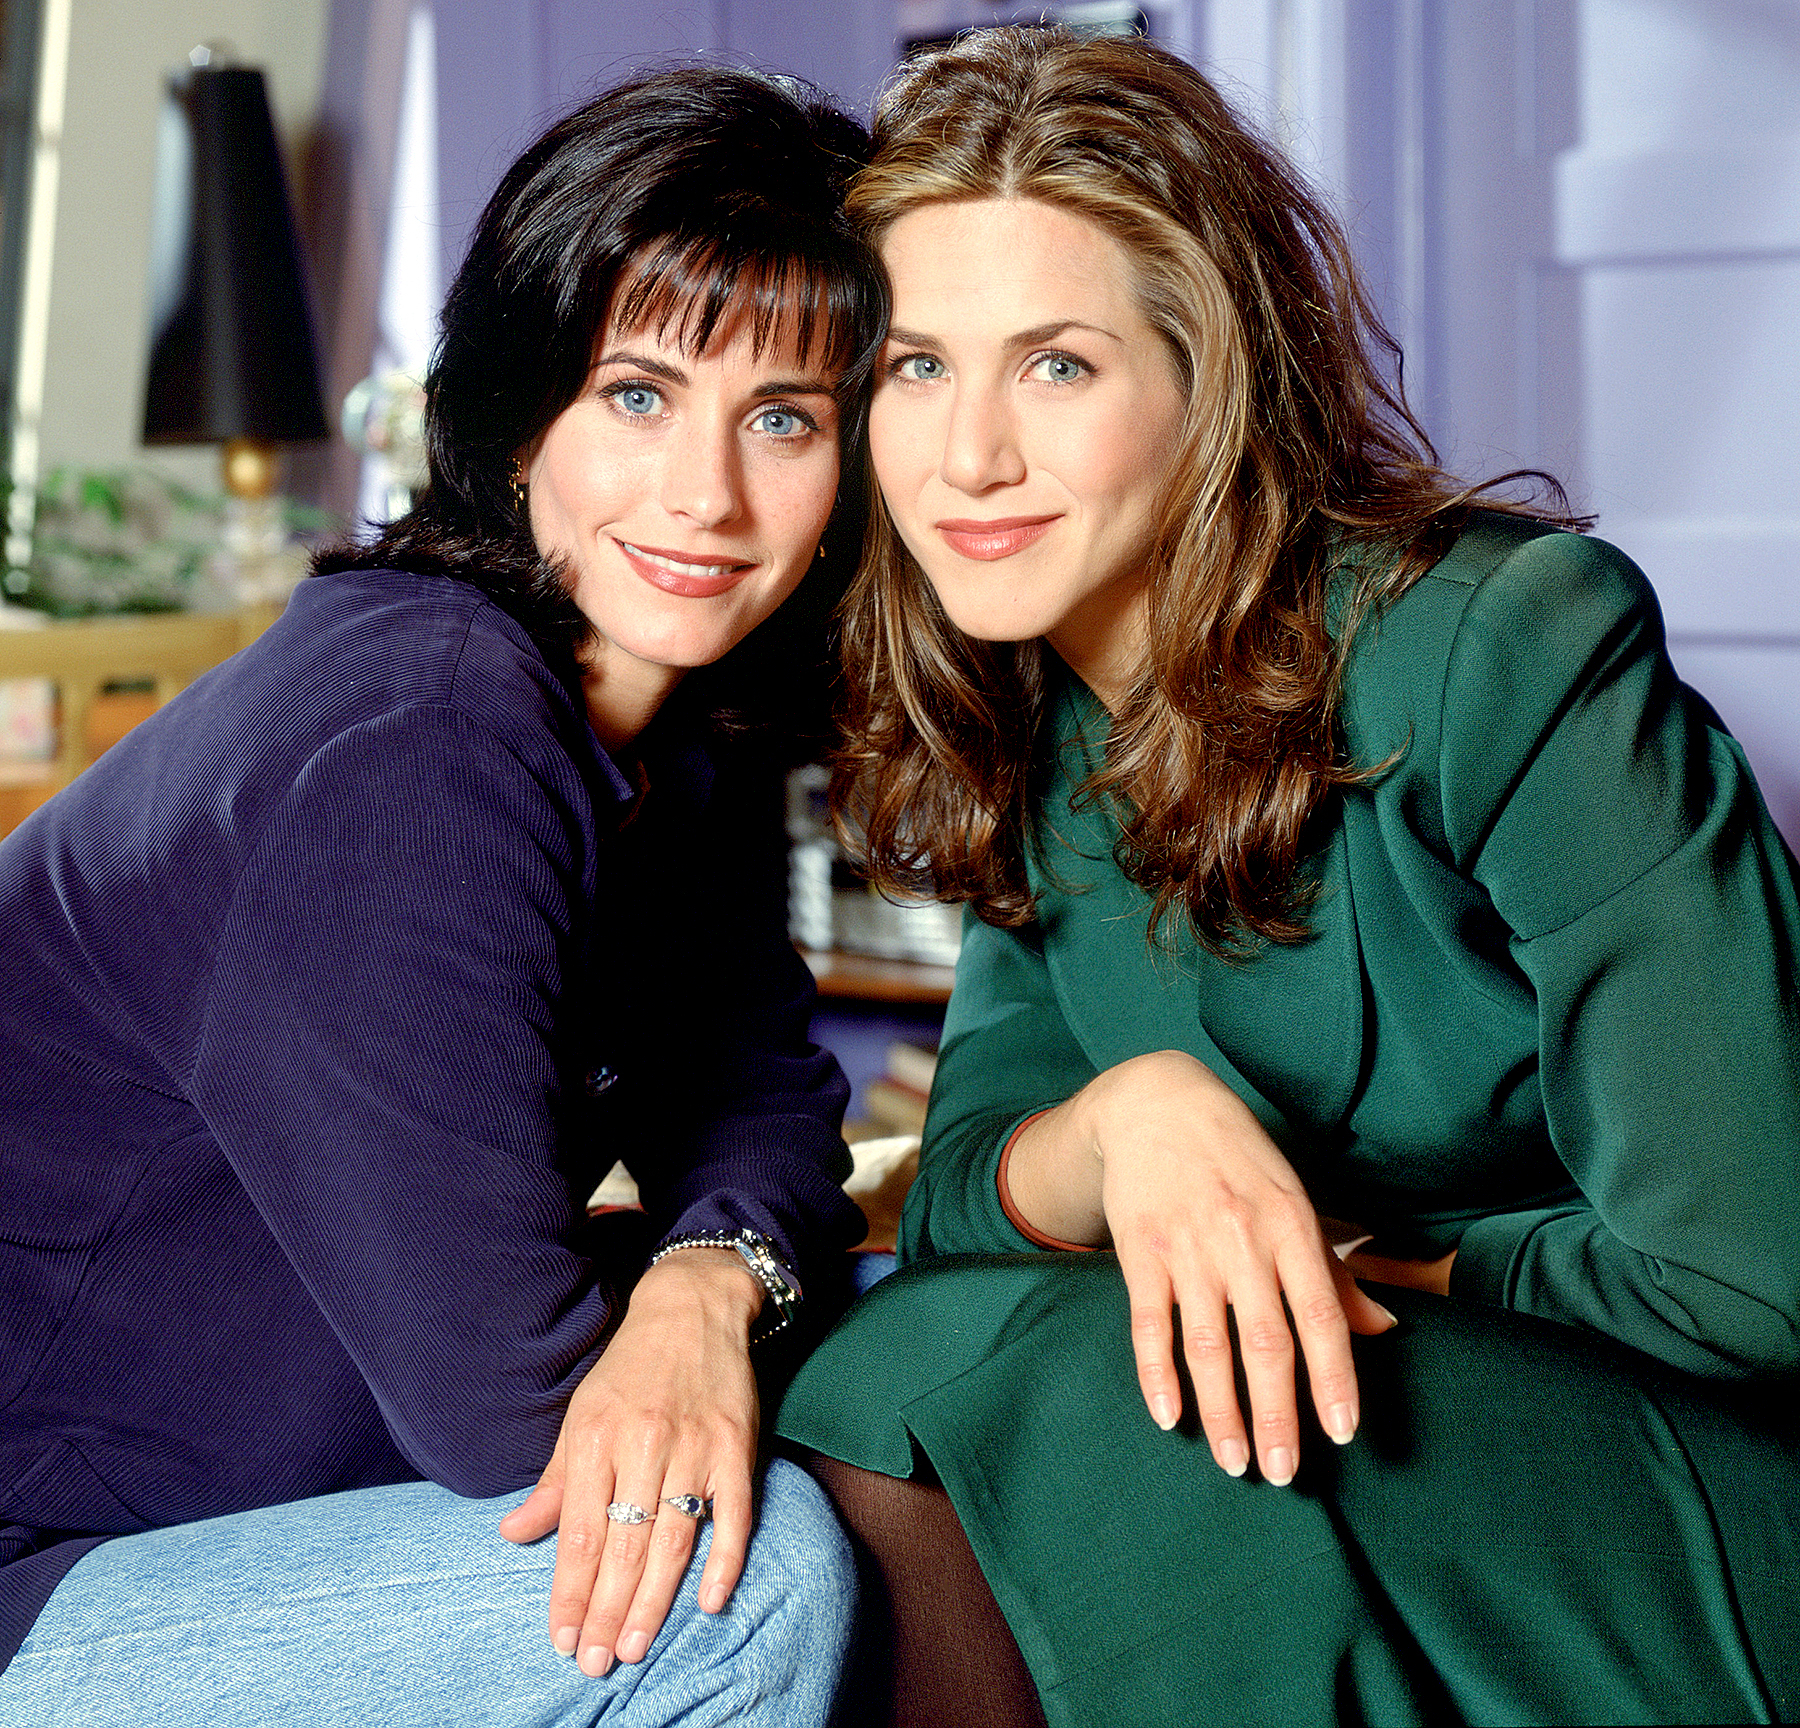 Courteney Cox Arquette as Monica Geller and Jennifer Aniston as Rachel Green on Friends.